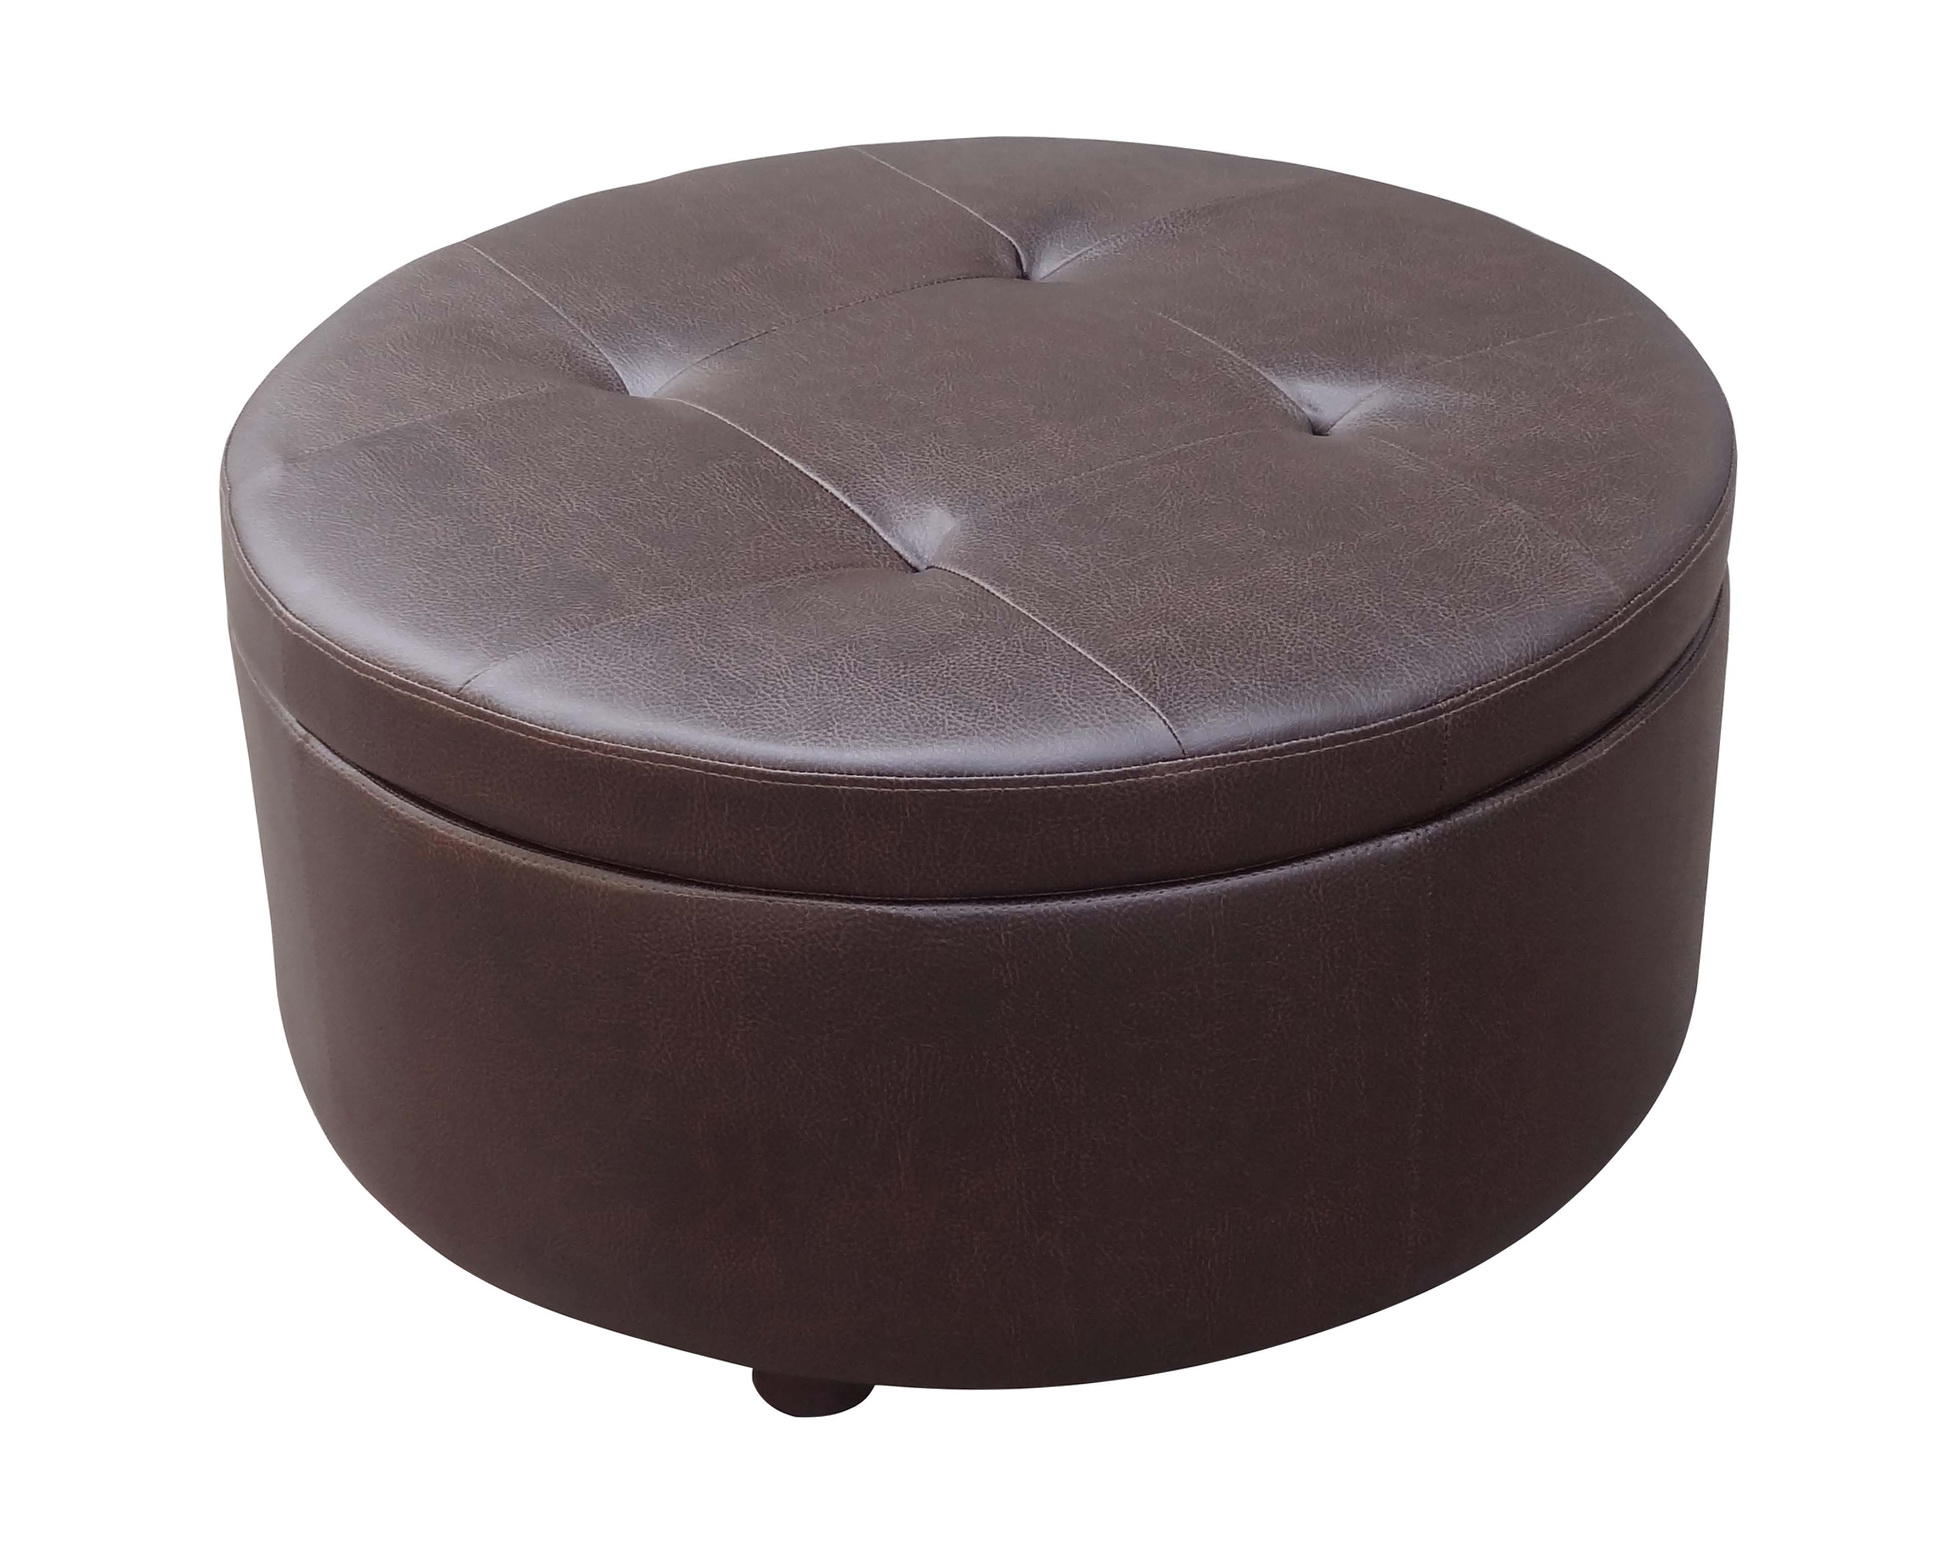 Tufted Leather Ottoman | Ottoman with Shelf Underneath | Round Storage Ottoman